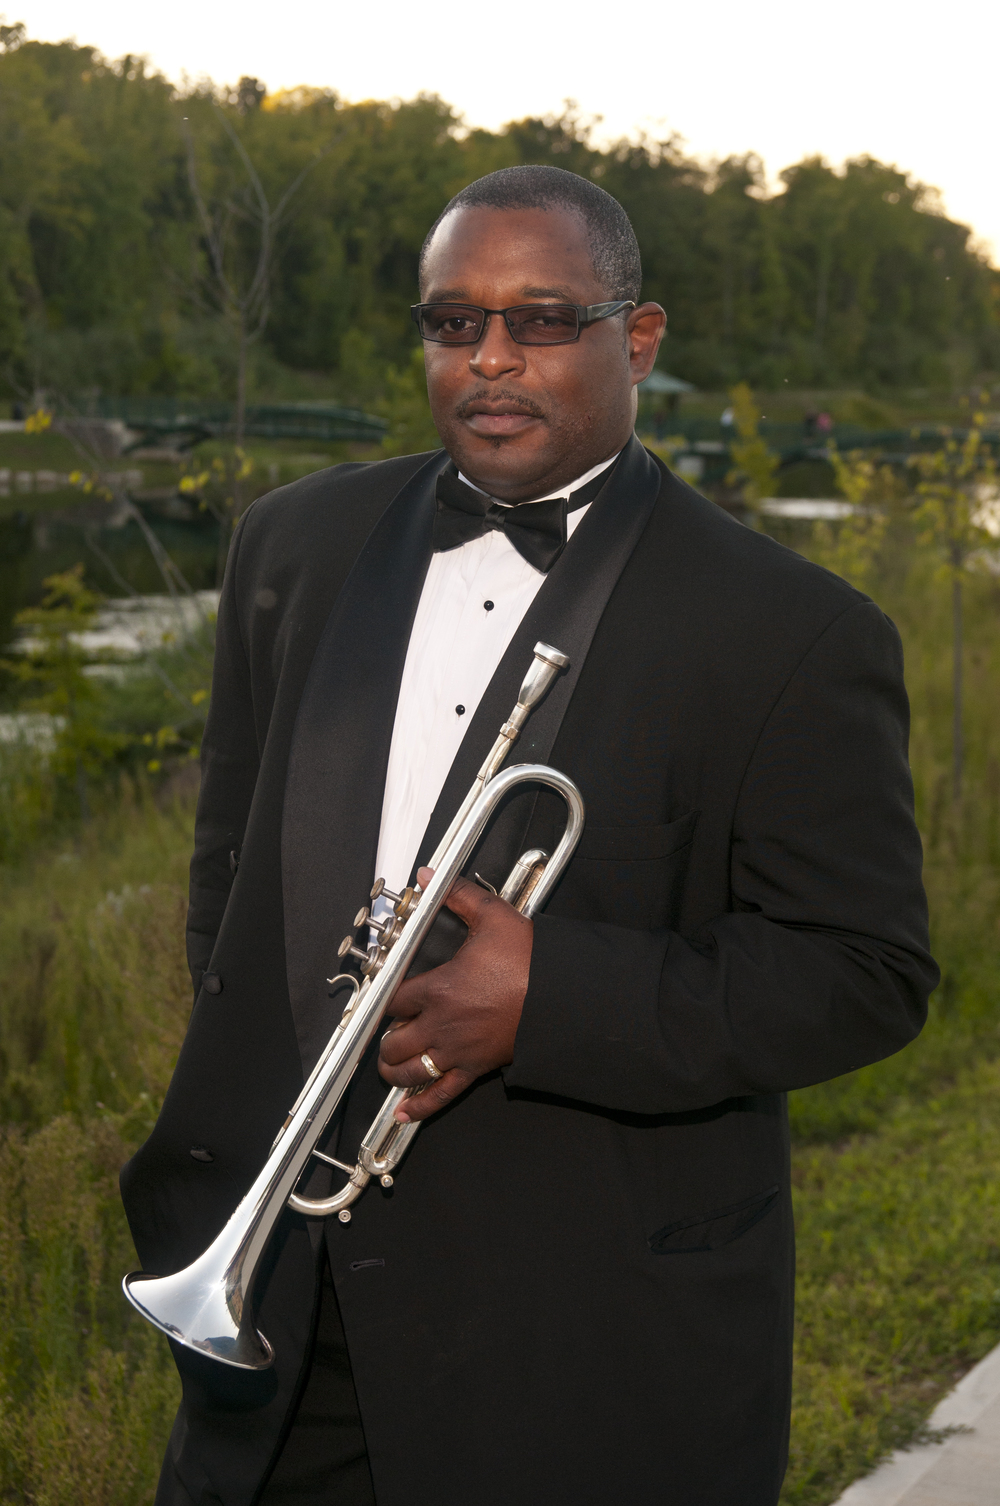 George Ervin, Lead Trumpet, Trumpet Section Leader